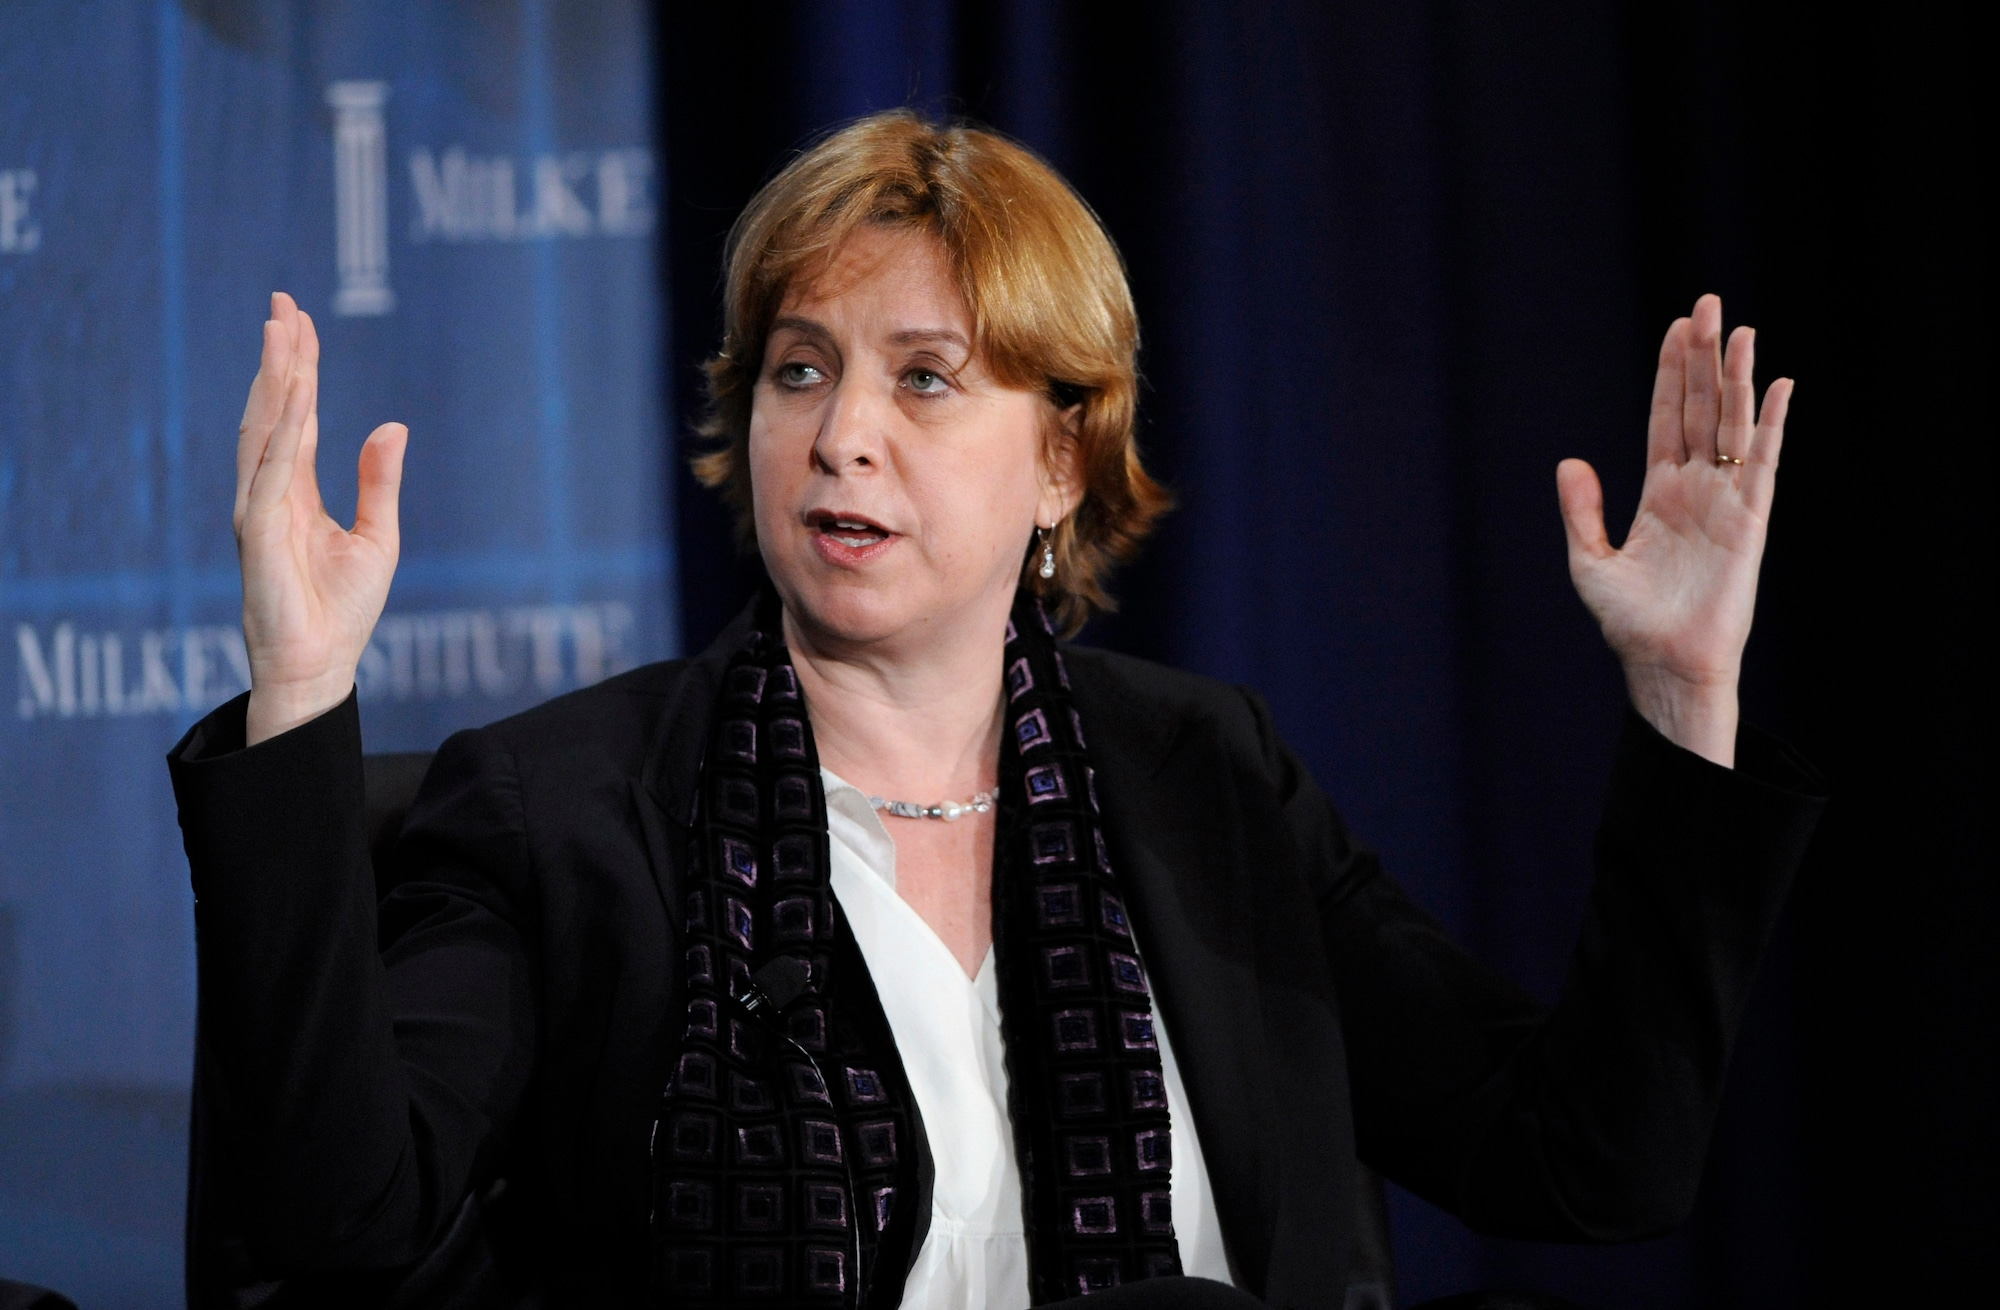 Vivian Schiller, president and CEO of NPR, participates in the 2010 Milken Institute Global Conference in Beverly Hills